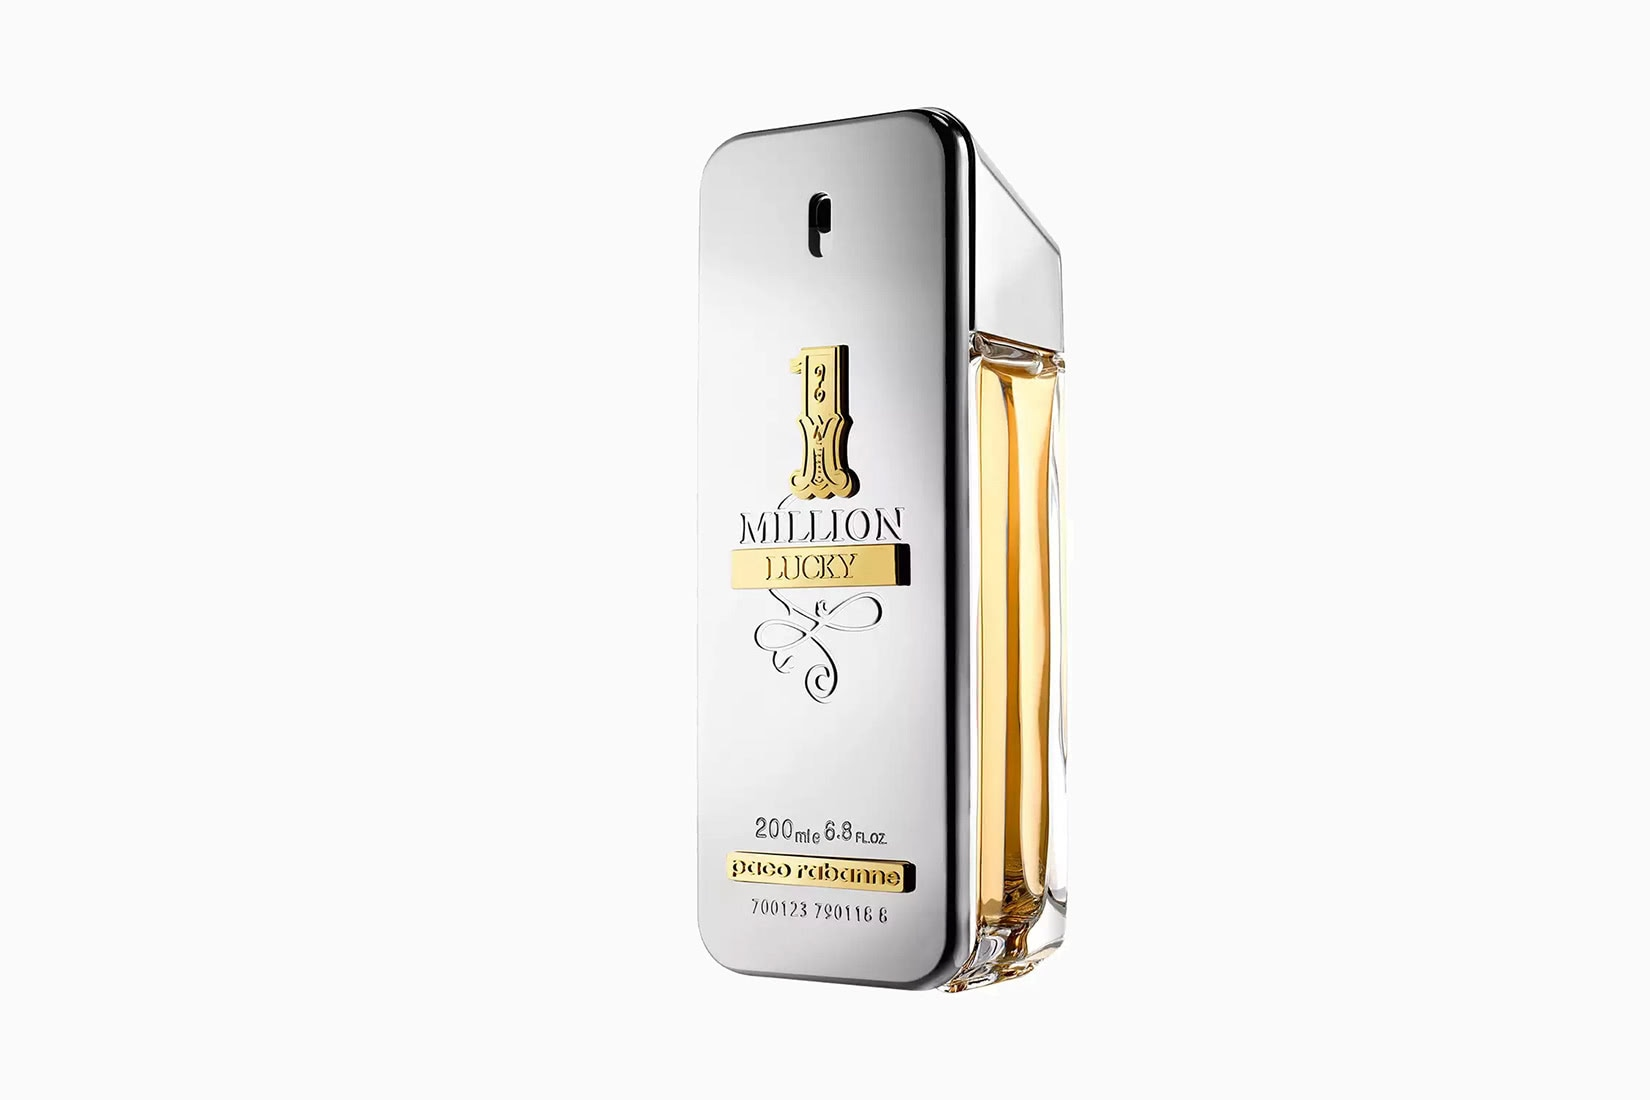 best men cologne paco rabanne 1 million lucky - Luxe Digital